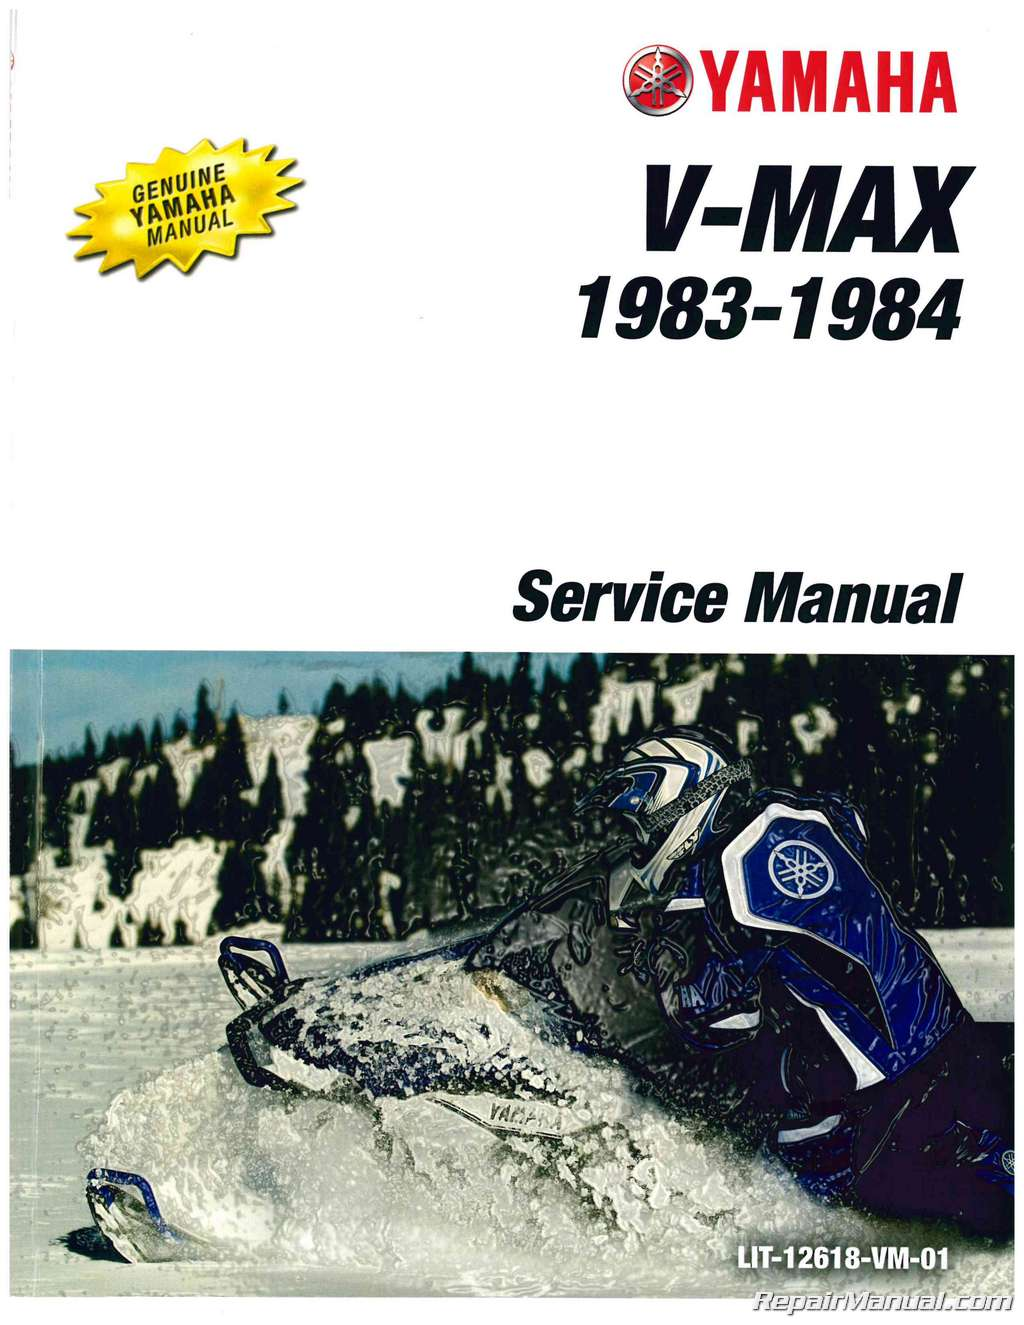 Vintage Yamaha Vmax Snowmobile on vmax headlight, motorcycle turn signal resistor diagram, vmax engine diagram, vmax clock, vmax 500 jetting chart, turn signal circuit diagram, python diagram, vmax battery,